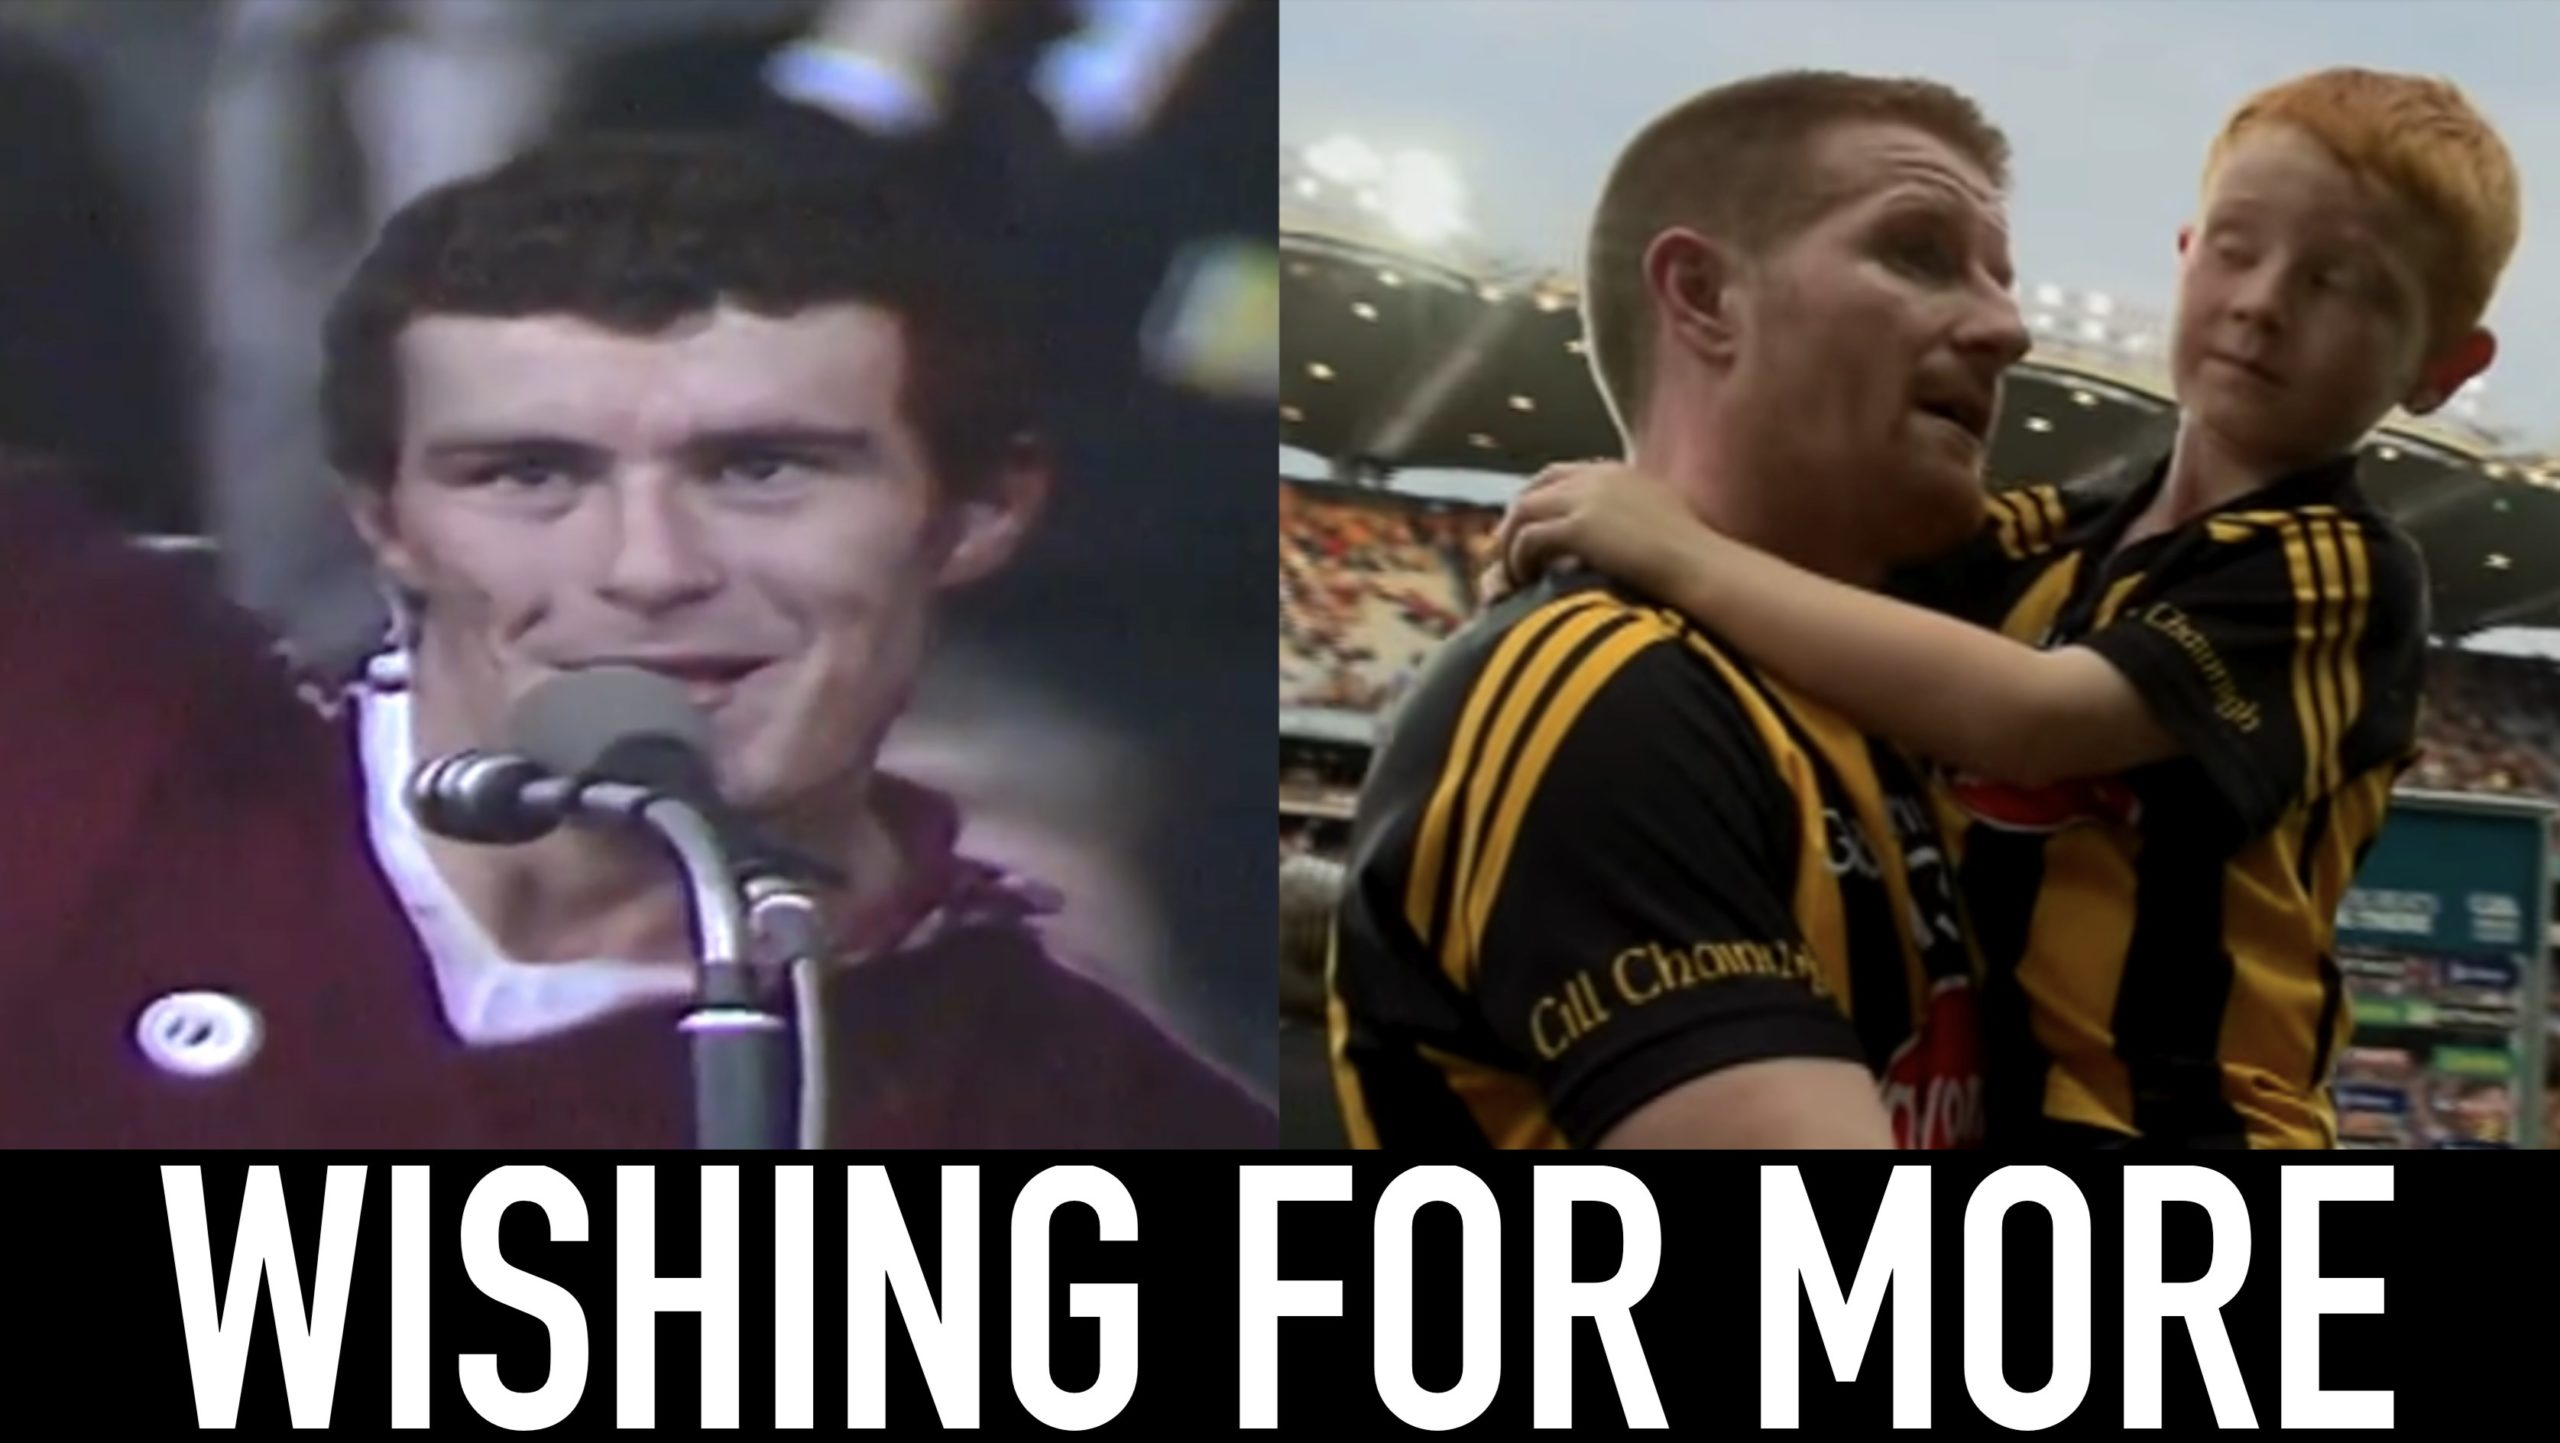 Hurlers whose careers were cut short | OurGame